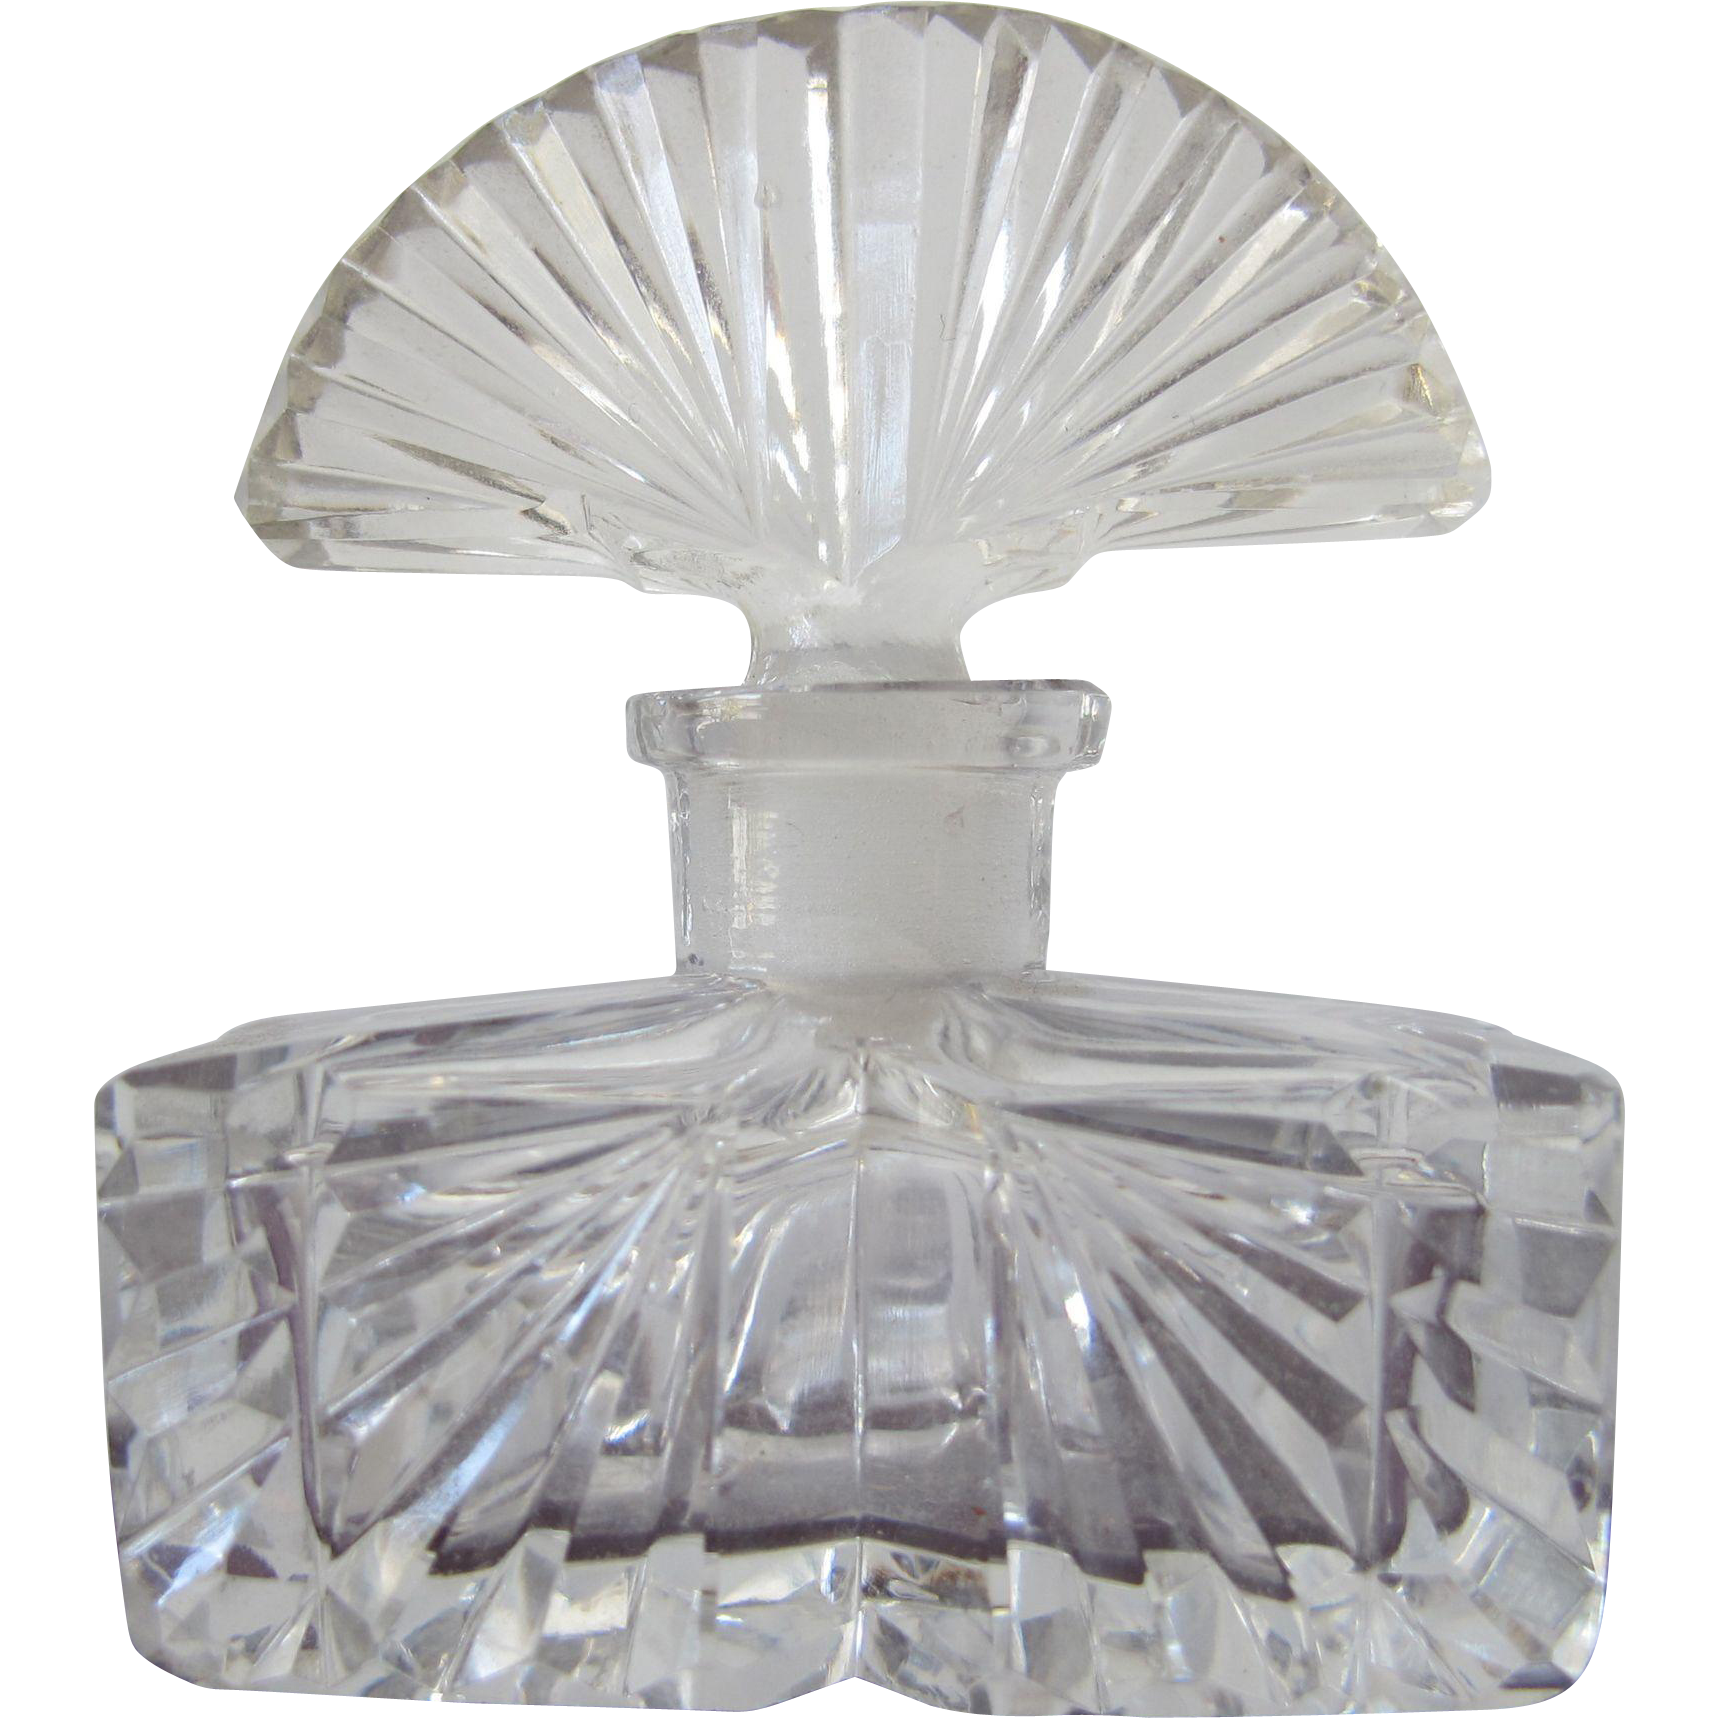 Czechoslovakian Perfume Bottle 1920's Crystal Glass with Glass Dauber